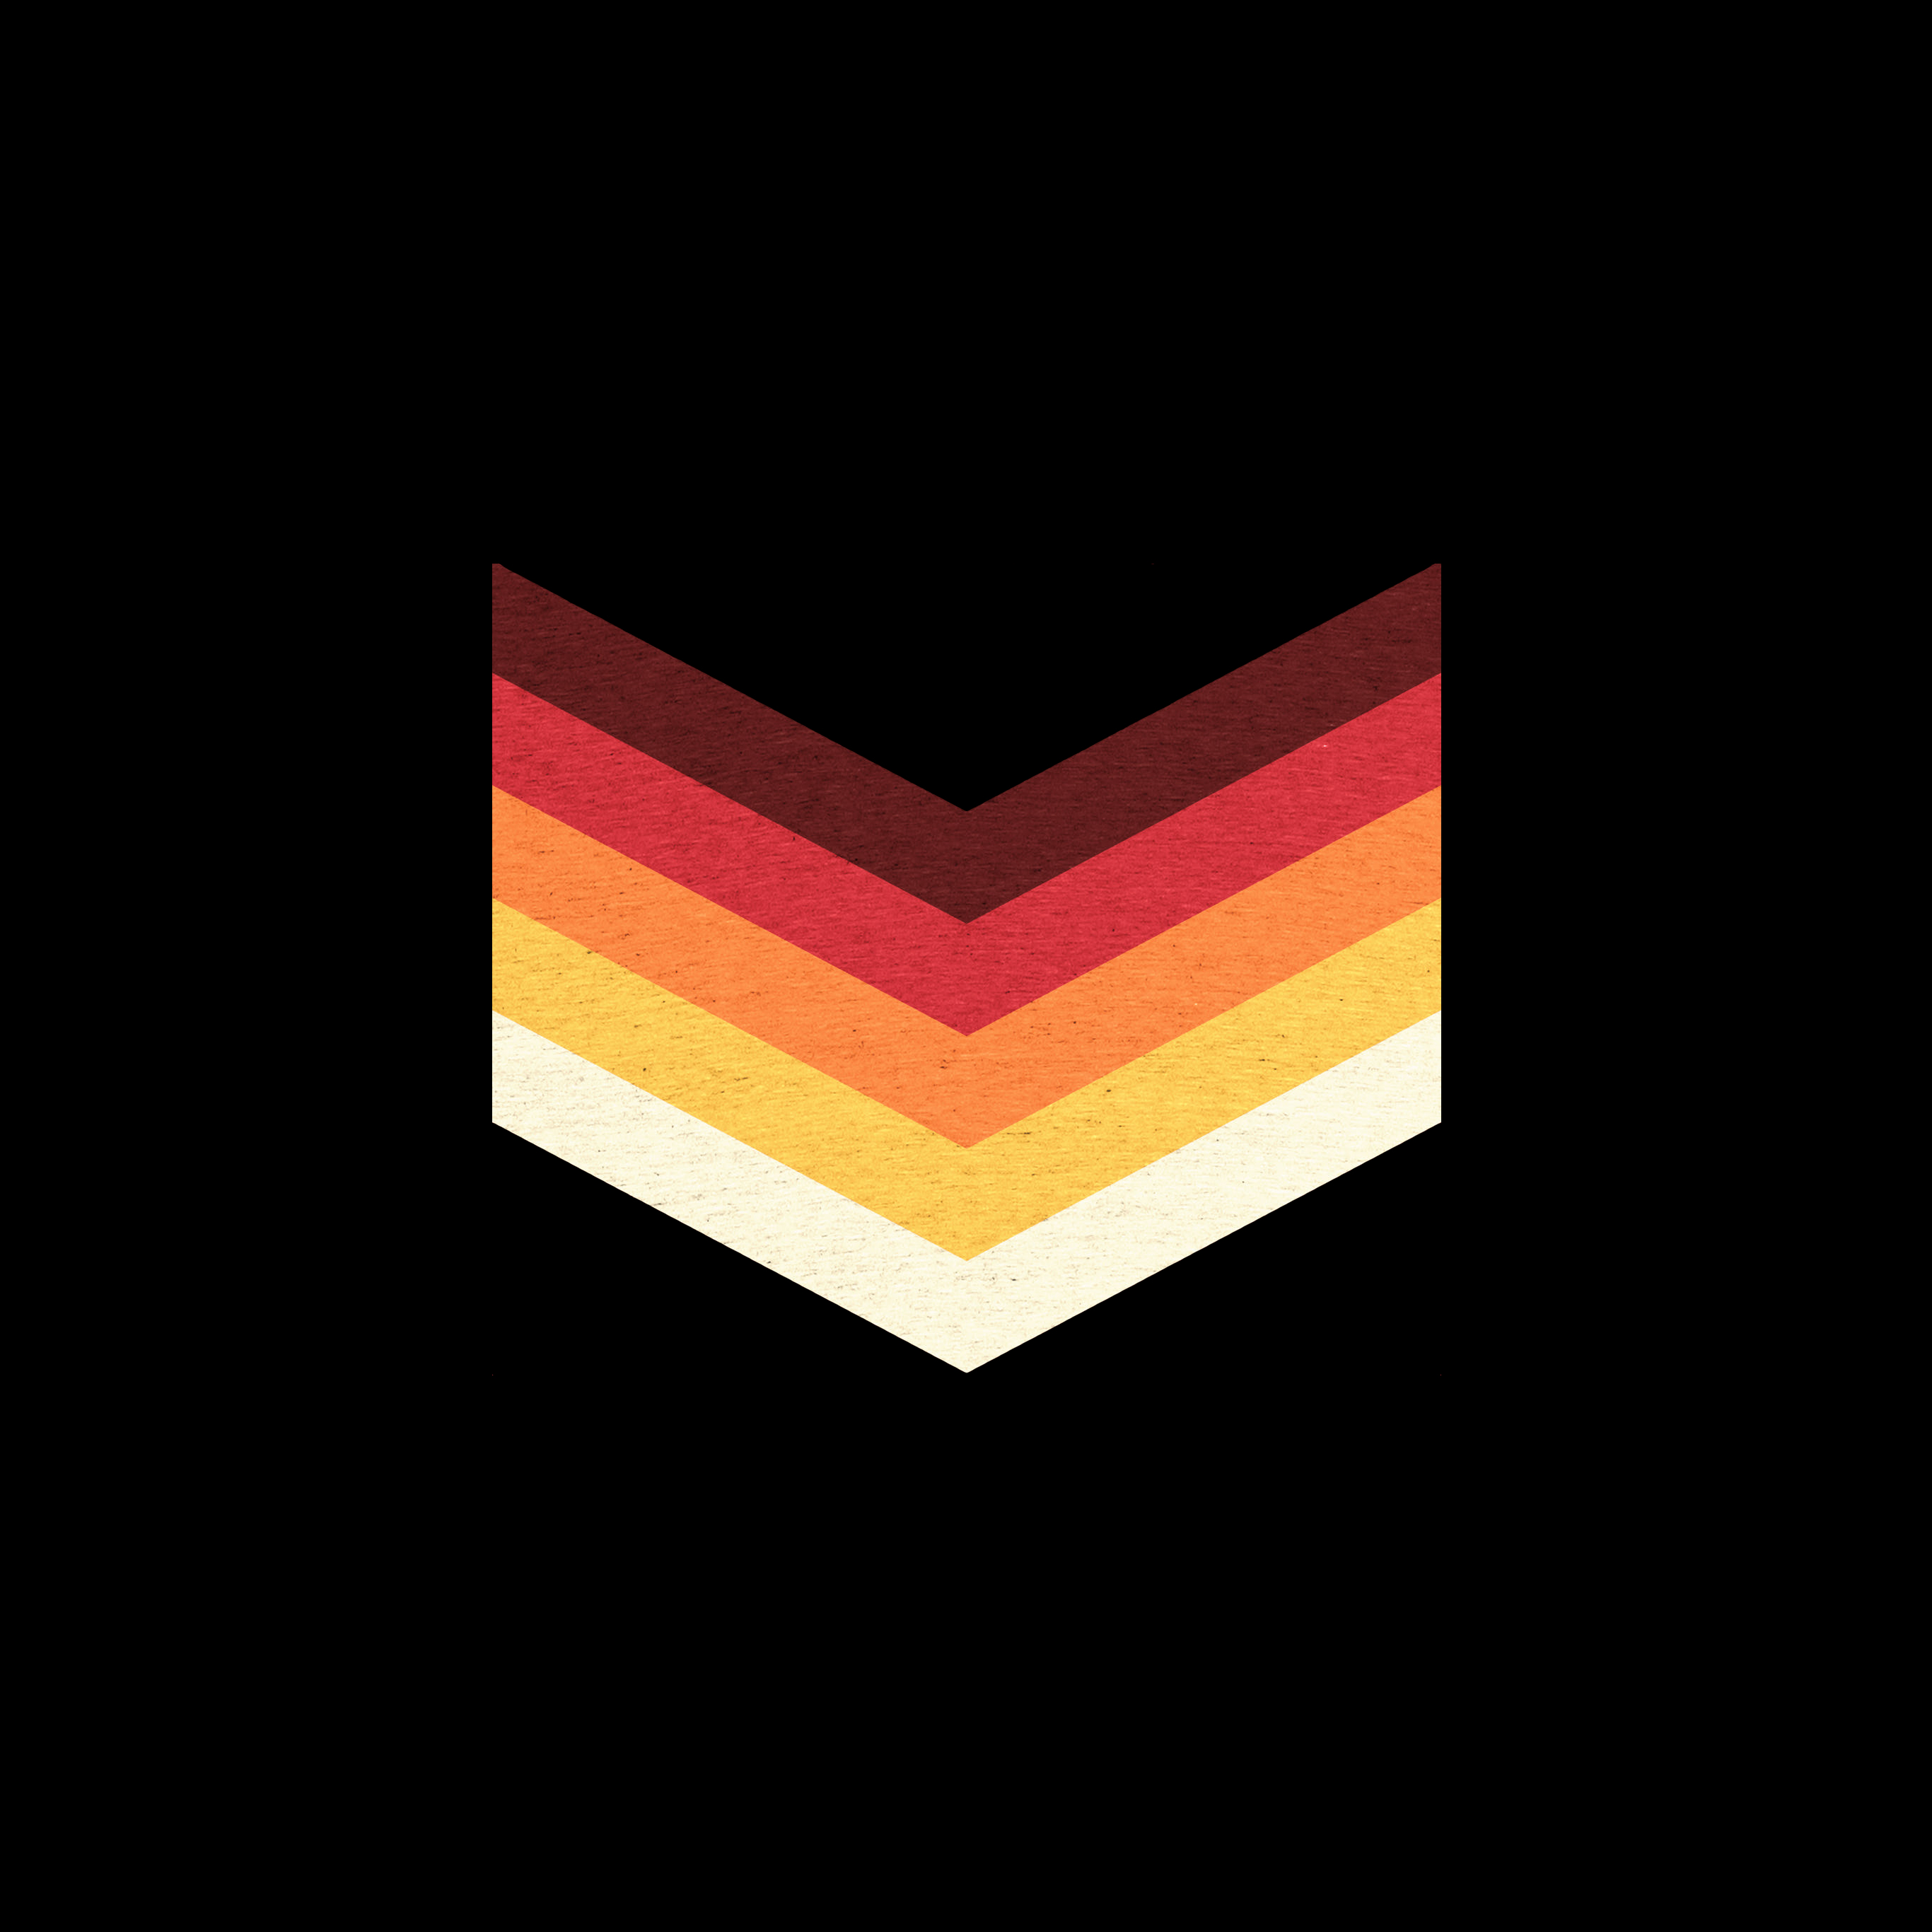 Black Iphone Wallpaper: Official MKBHD Wallpapers For IPhone, IPad & Desktop